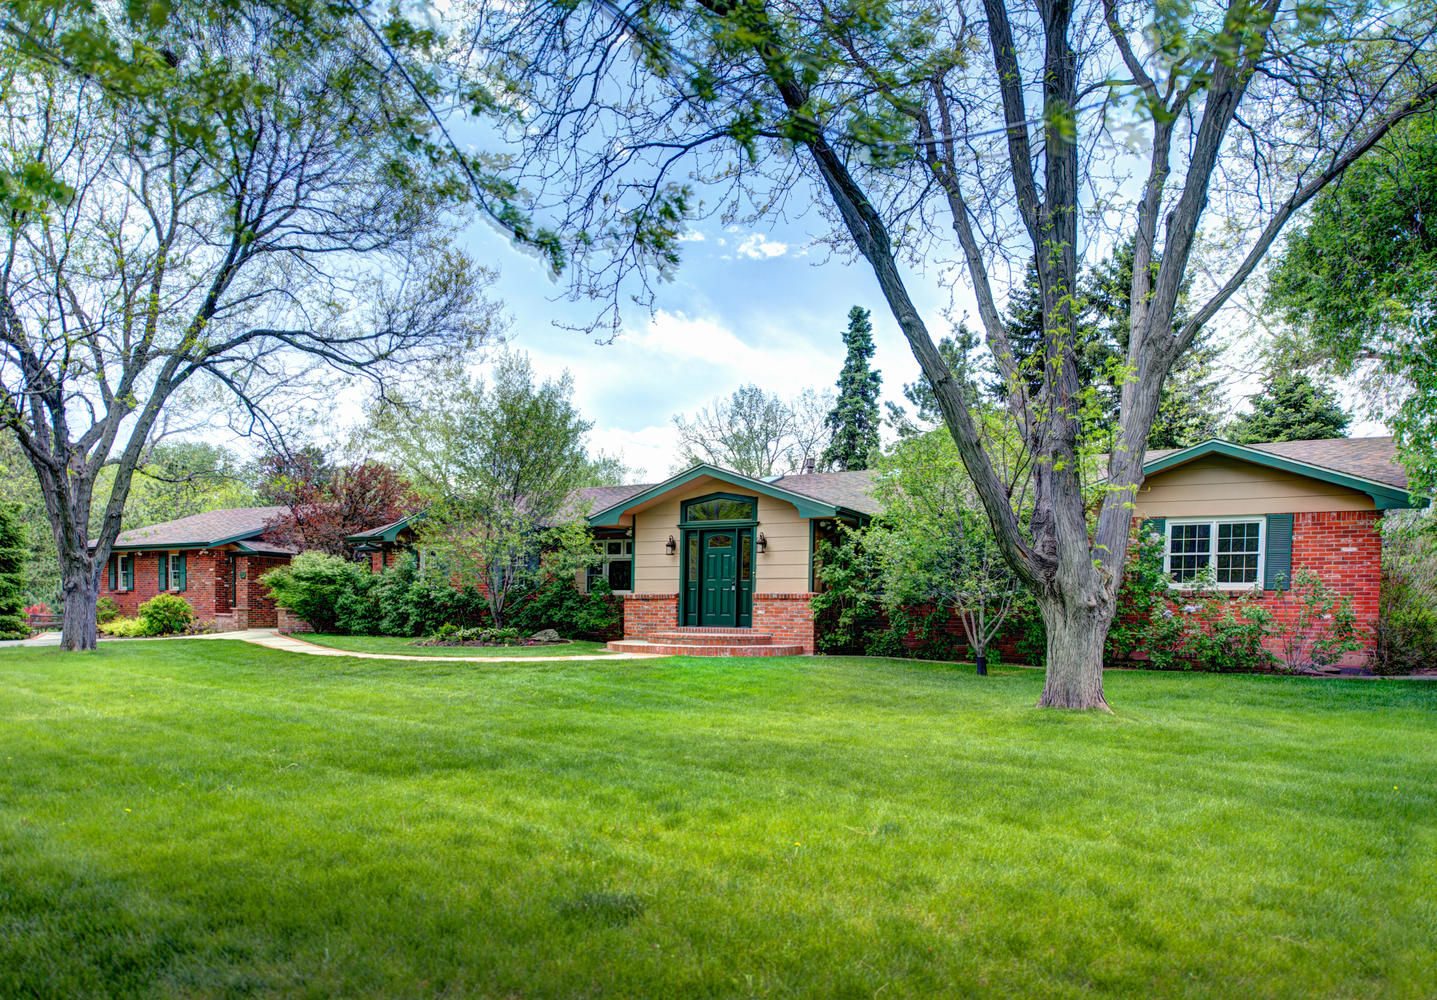 Single Family Home for Sale at Sprawling Brick Ranch on Nearly an Acre in Old Cherry Hills 23 South Lane Cherry Hills Village, Colorado, 80113 United States